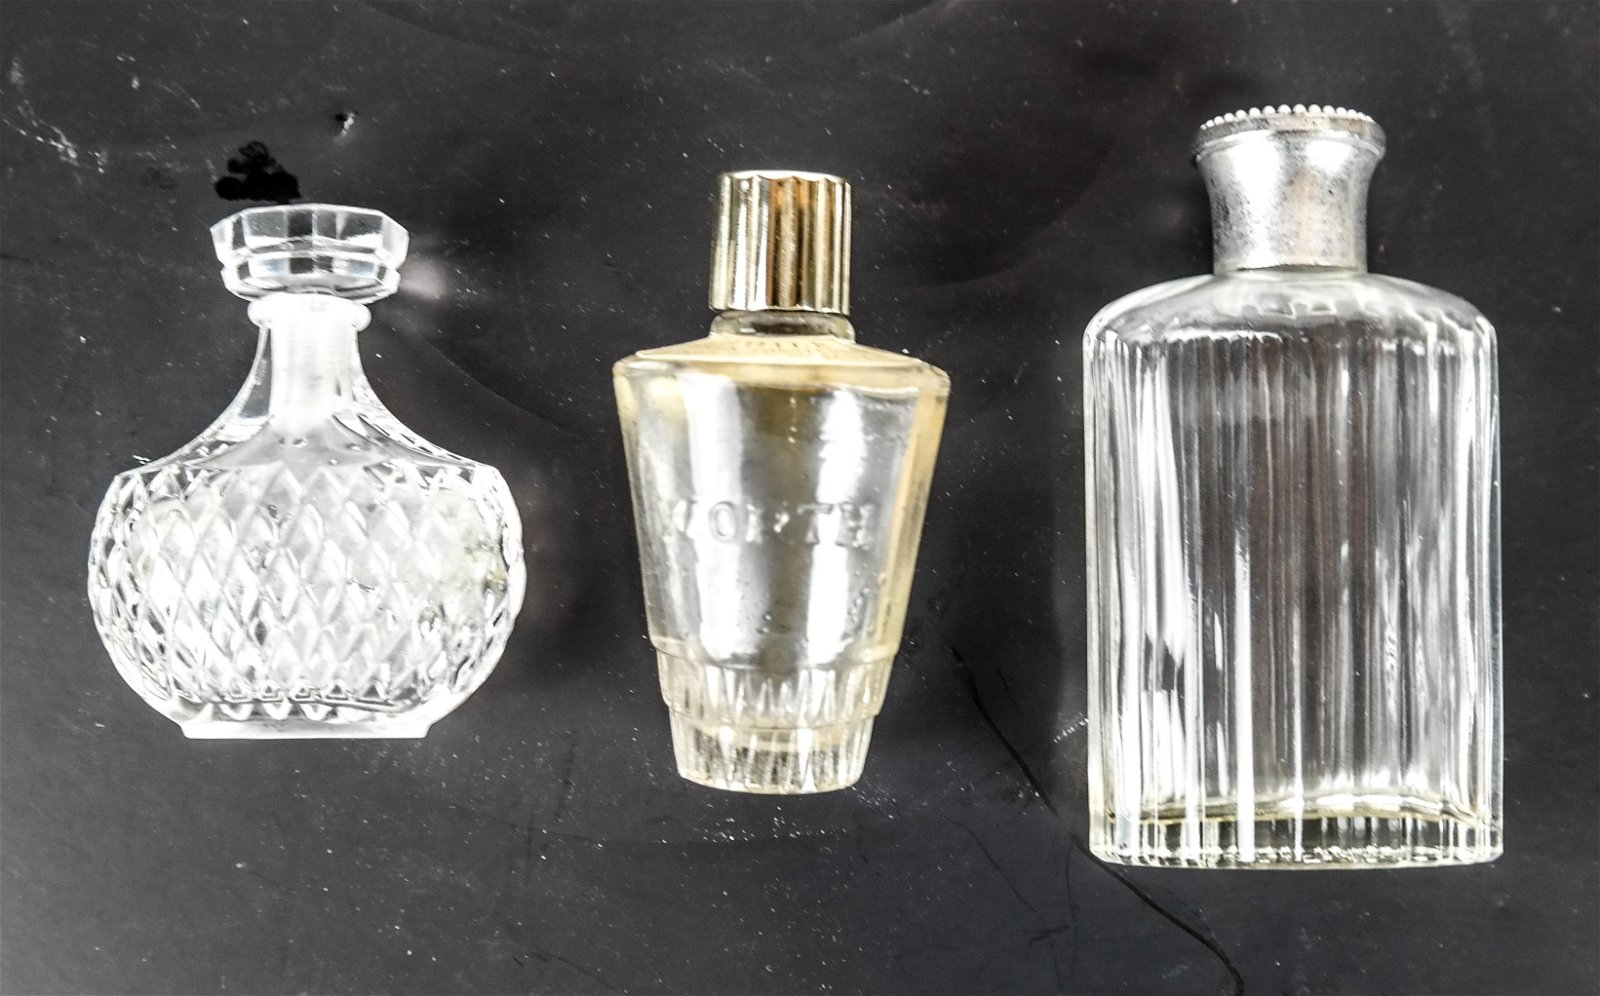 Lalique, France, Incl. Worth - Perfume Bottles